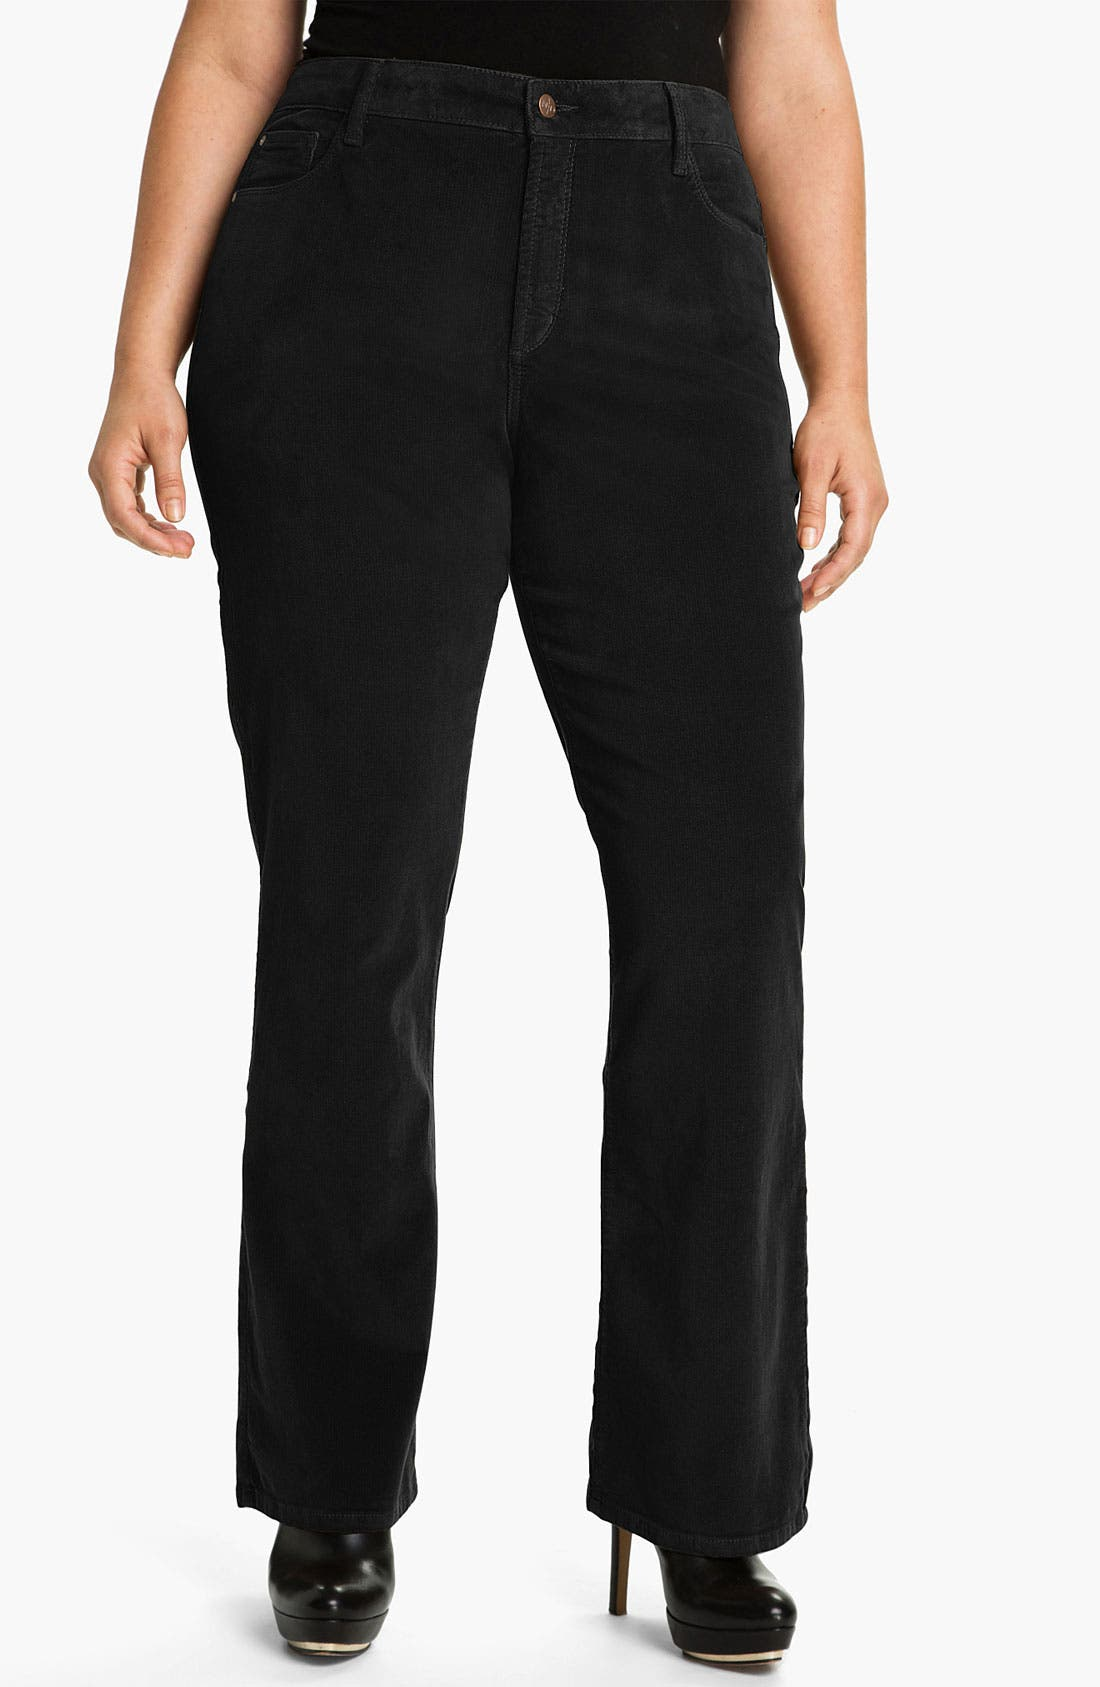 Alternate Image 1 Selected - NYDJ 'Barbara' Bootcut Corduroy Pants (Plus)